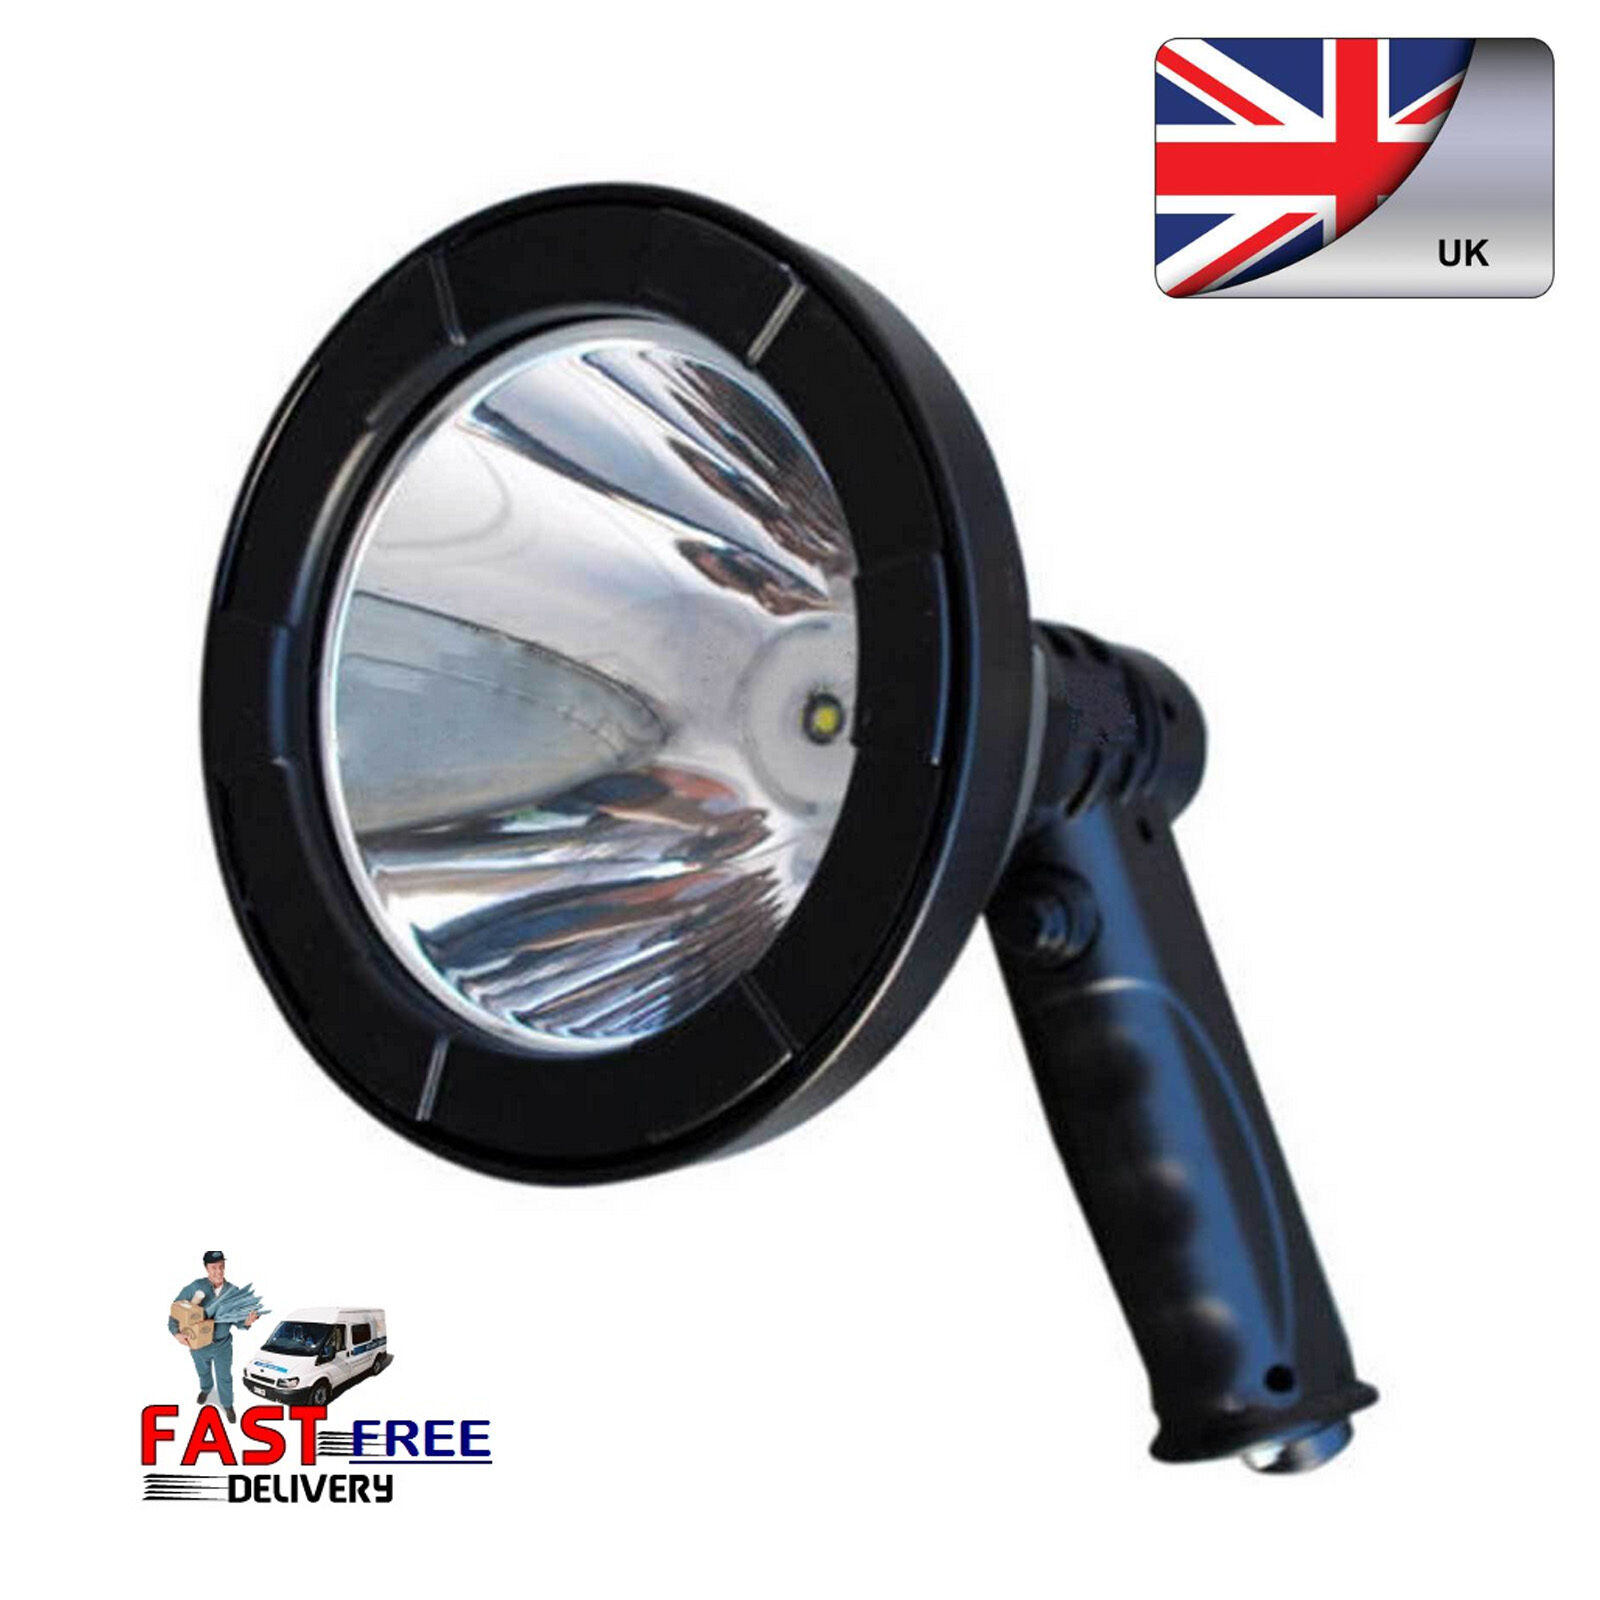 60W T6 LED Buffalo River Handheld Hunting SpotLight Lamp Lamping Foxing Shooting